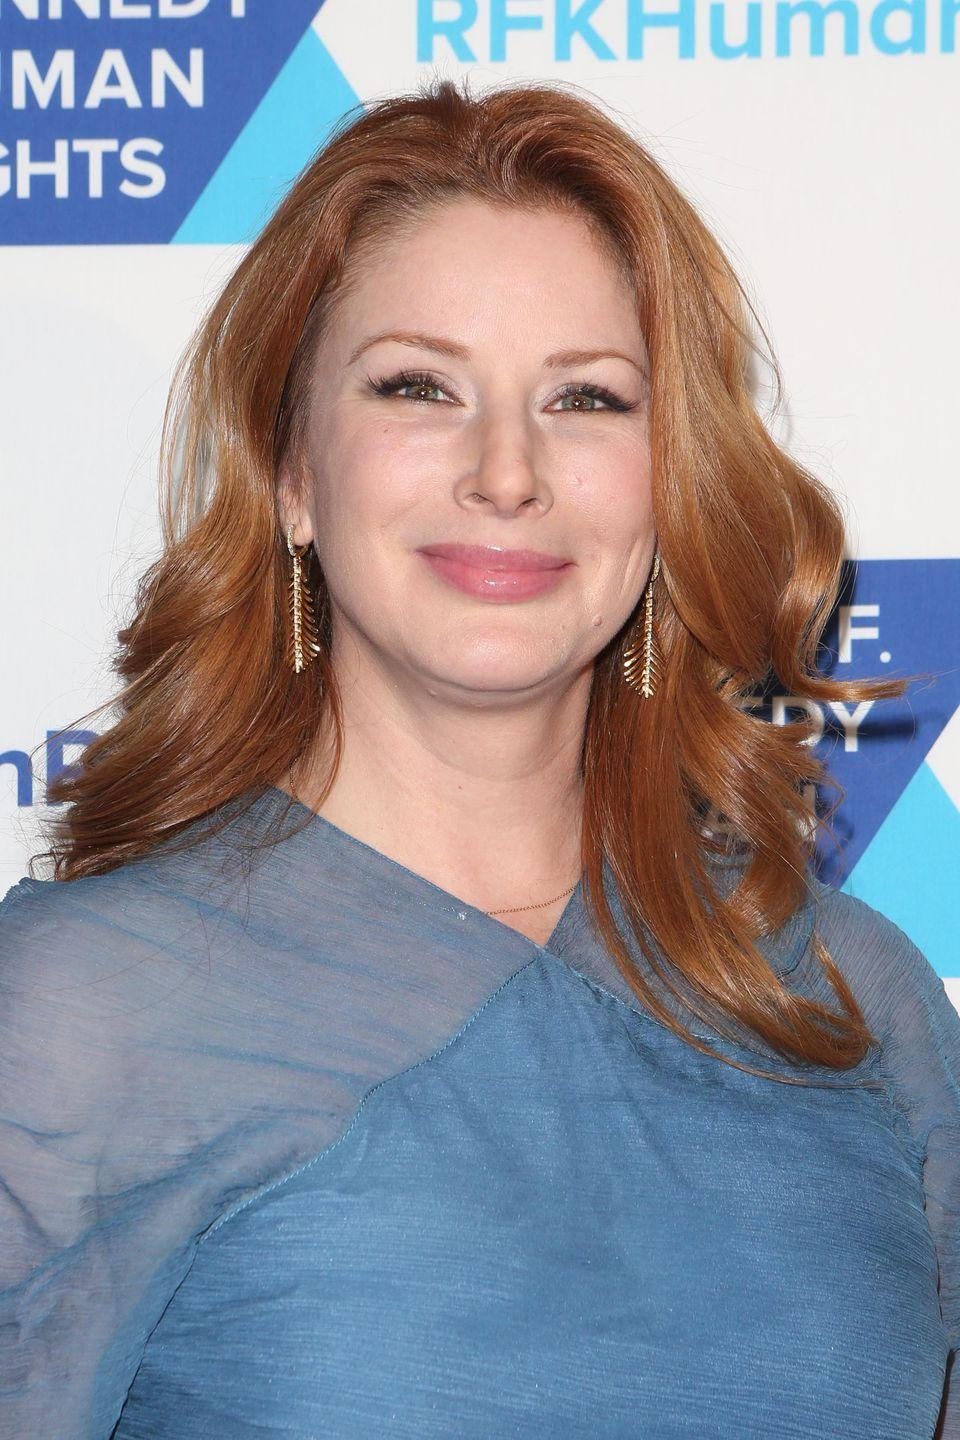 """<p><em>Law & Order: SVU</em> actress Diane Neal made a bid to become a representative for New York's 19th Congressional District. Neal ran in 2018 as an Independent, but lost to <a href=""""https://www.nytimes.com/elections/results/new-york-house-district-19"""" rel=""""nofollow noopener"""" target=""""_blank"""" data-ylk=""""slk:Democratic candidate Antonio Delgado"""" class=""""link rapid-noclick-resp"""">Democratic candidate Antonio Delgado</a>.</p>"""